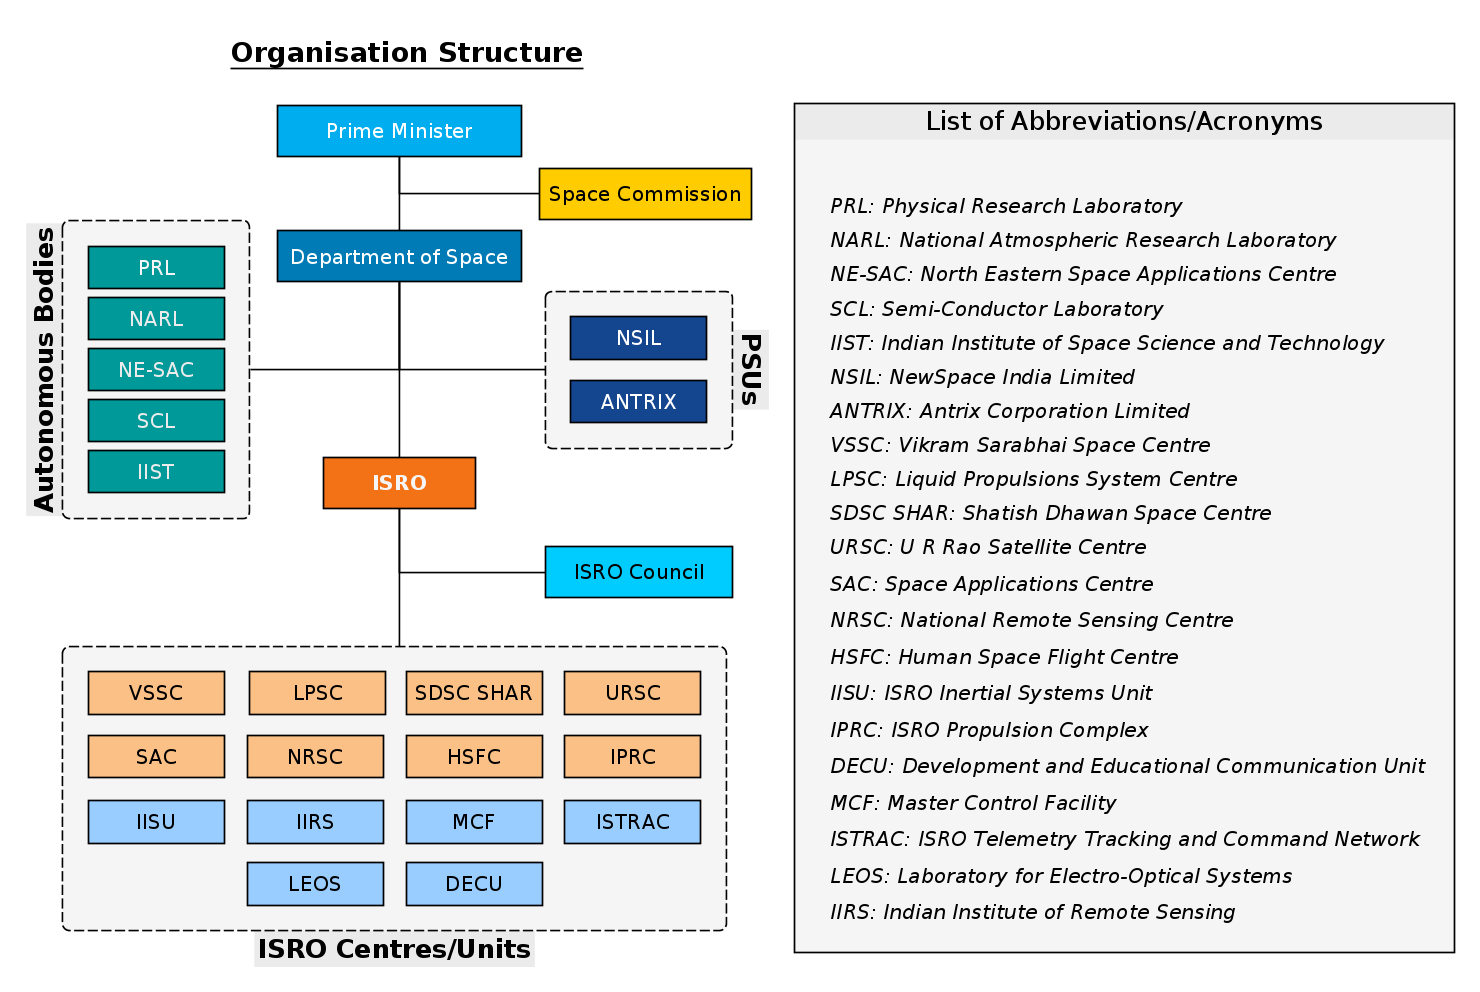 Create Organizational Chart In Word: Department of Space (India) - organization chart.jpg ,Chart